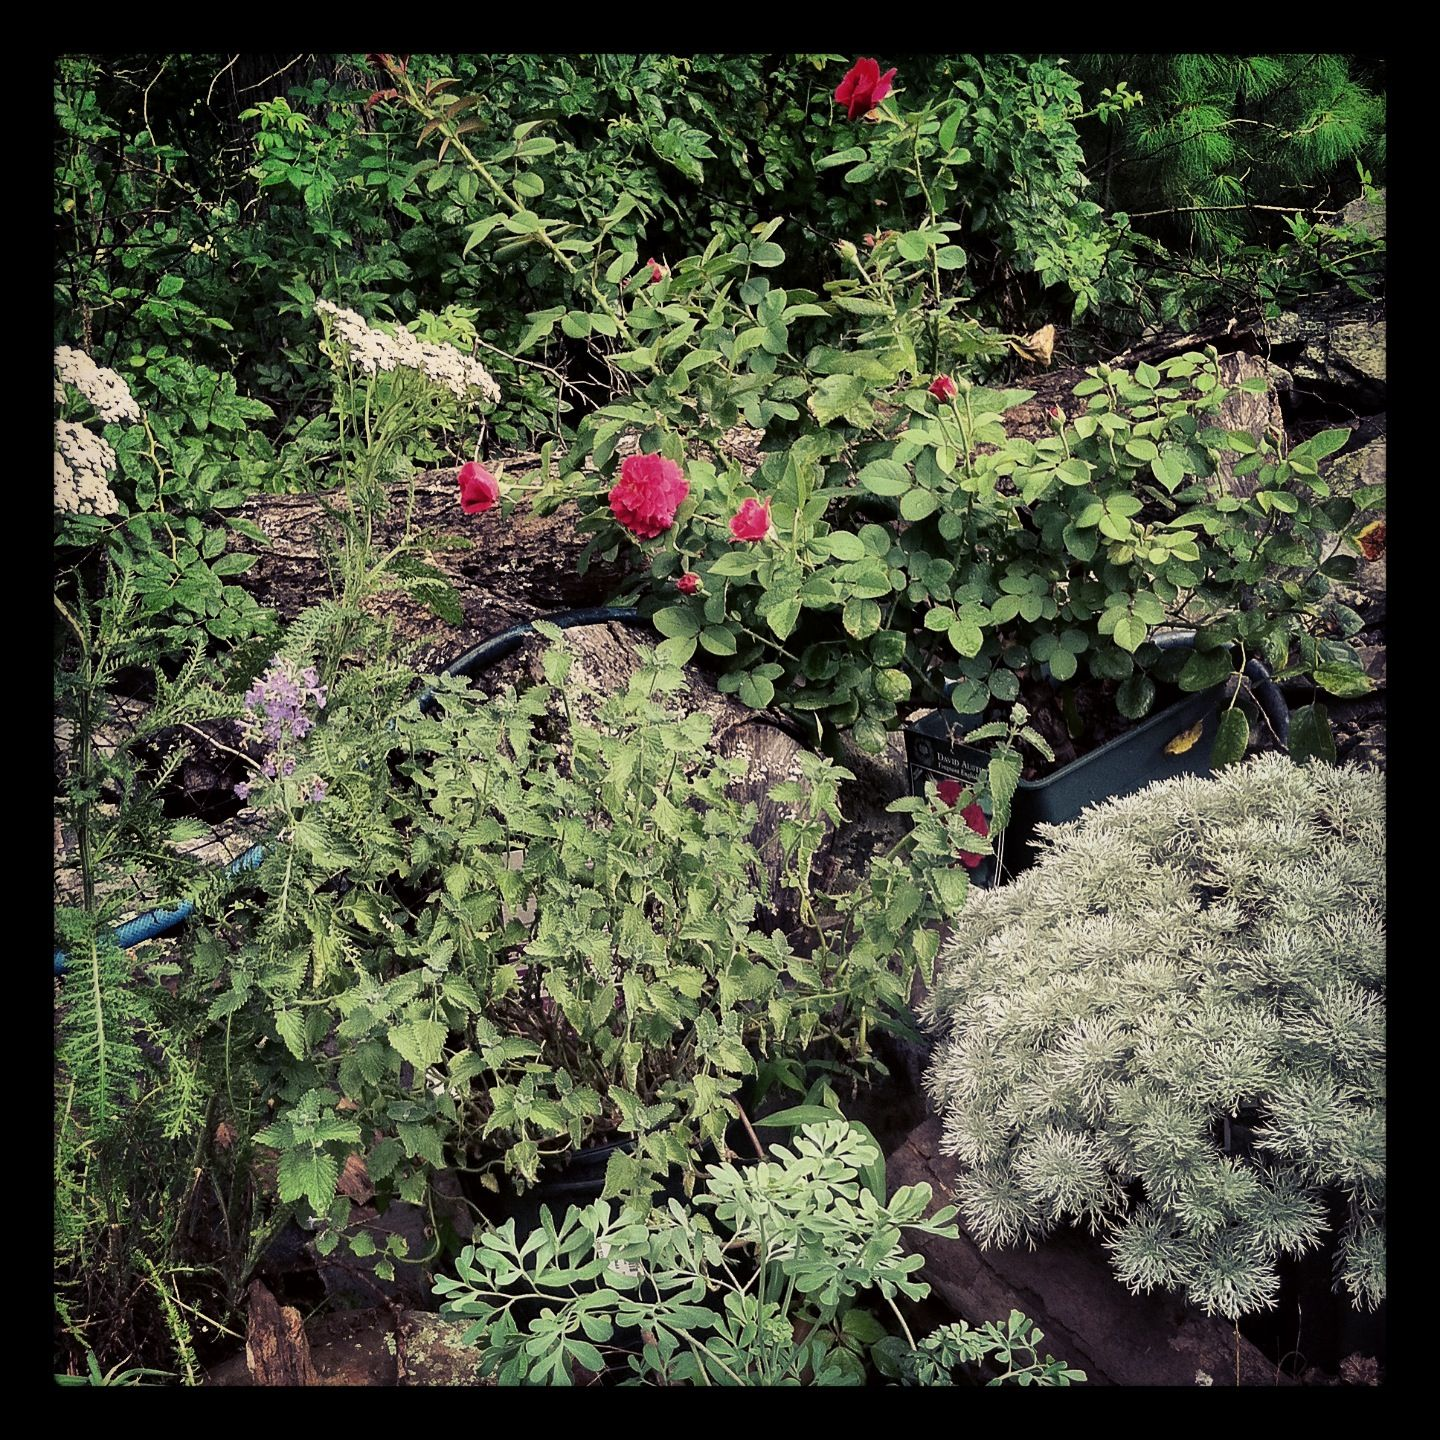 in my garden:  Silver mound artemisia, 'Tess' David Austen rose, yarrow, rue, catmint